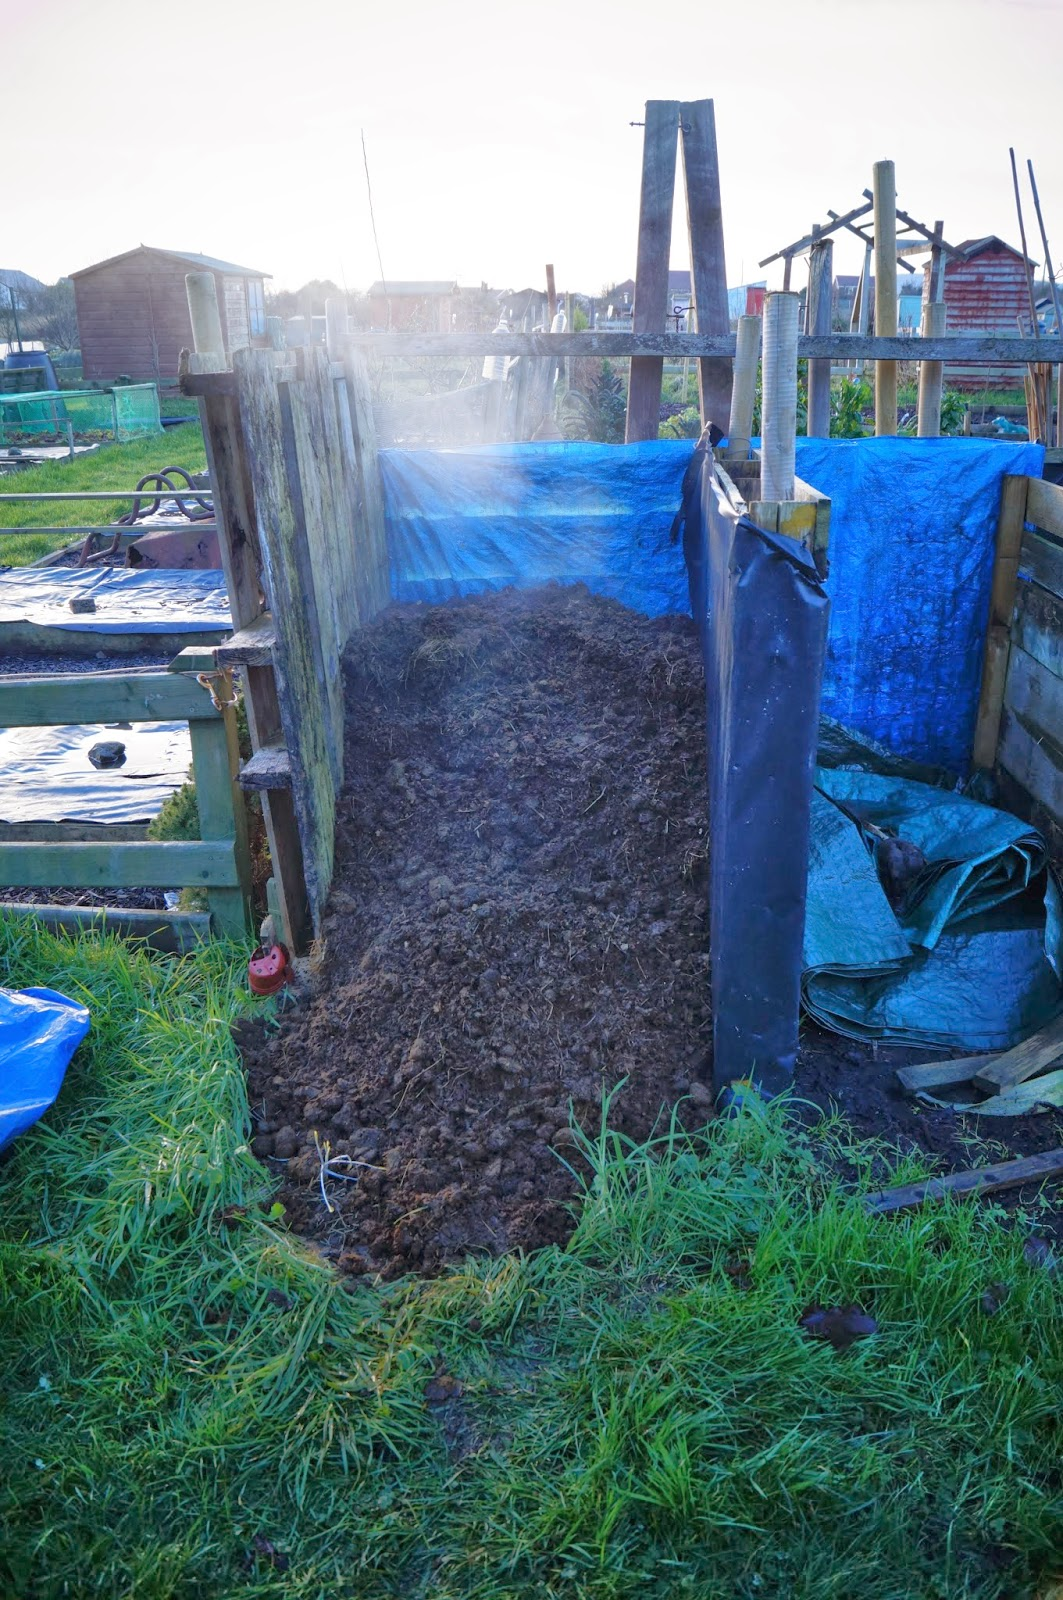 steaming horse poop - 'Grow Our Own' Allotment Blog